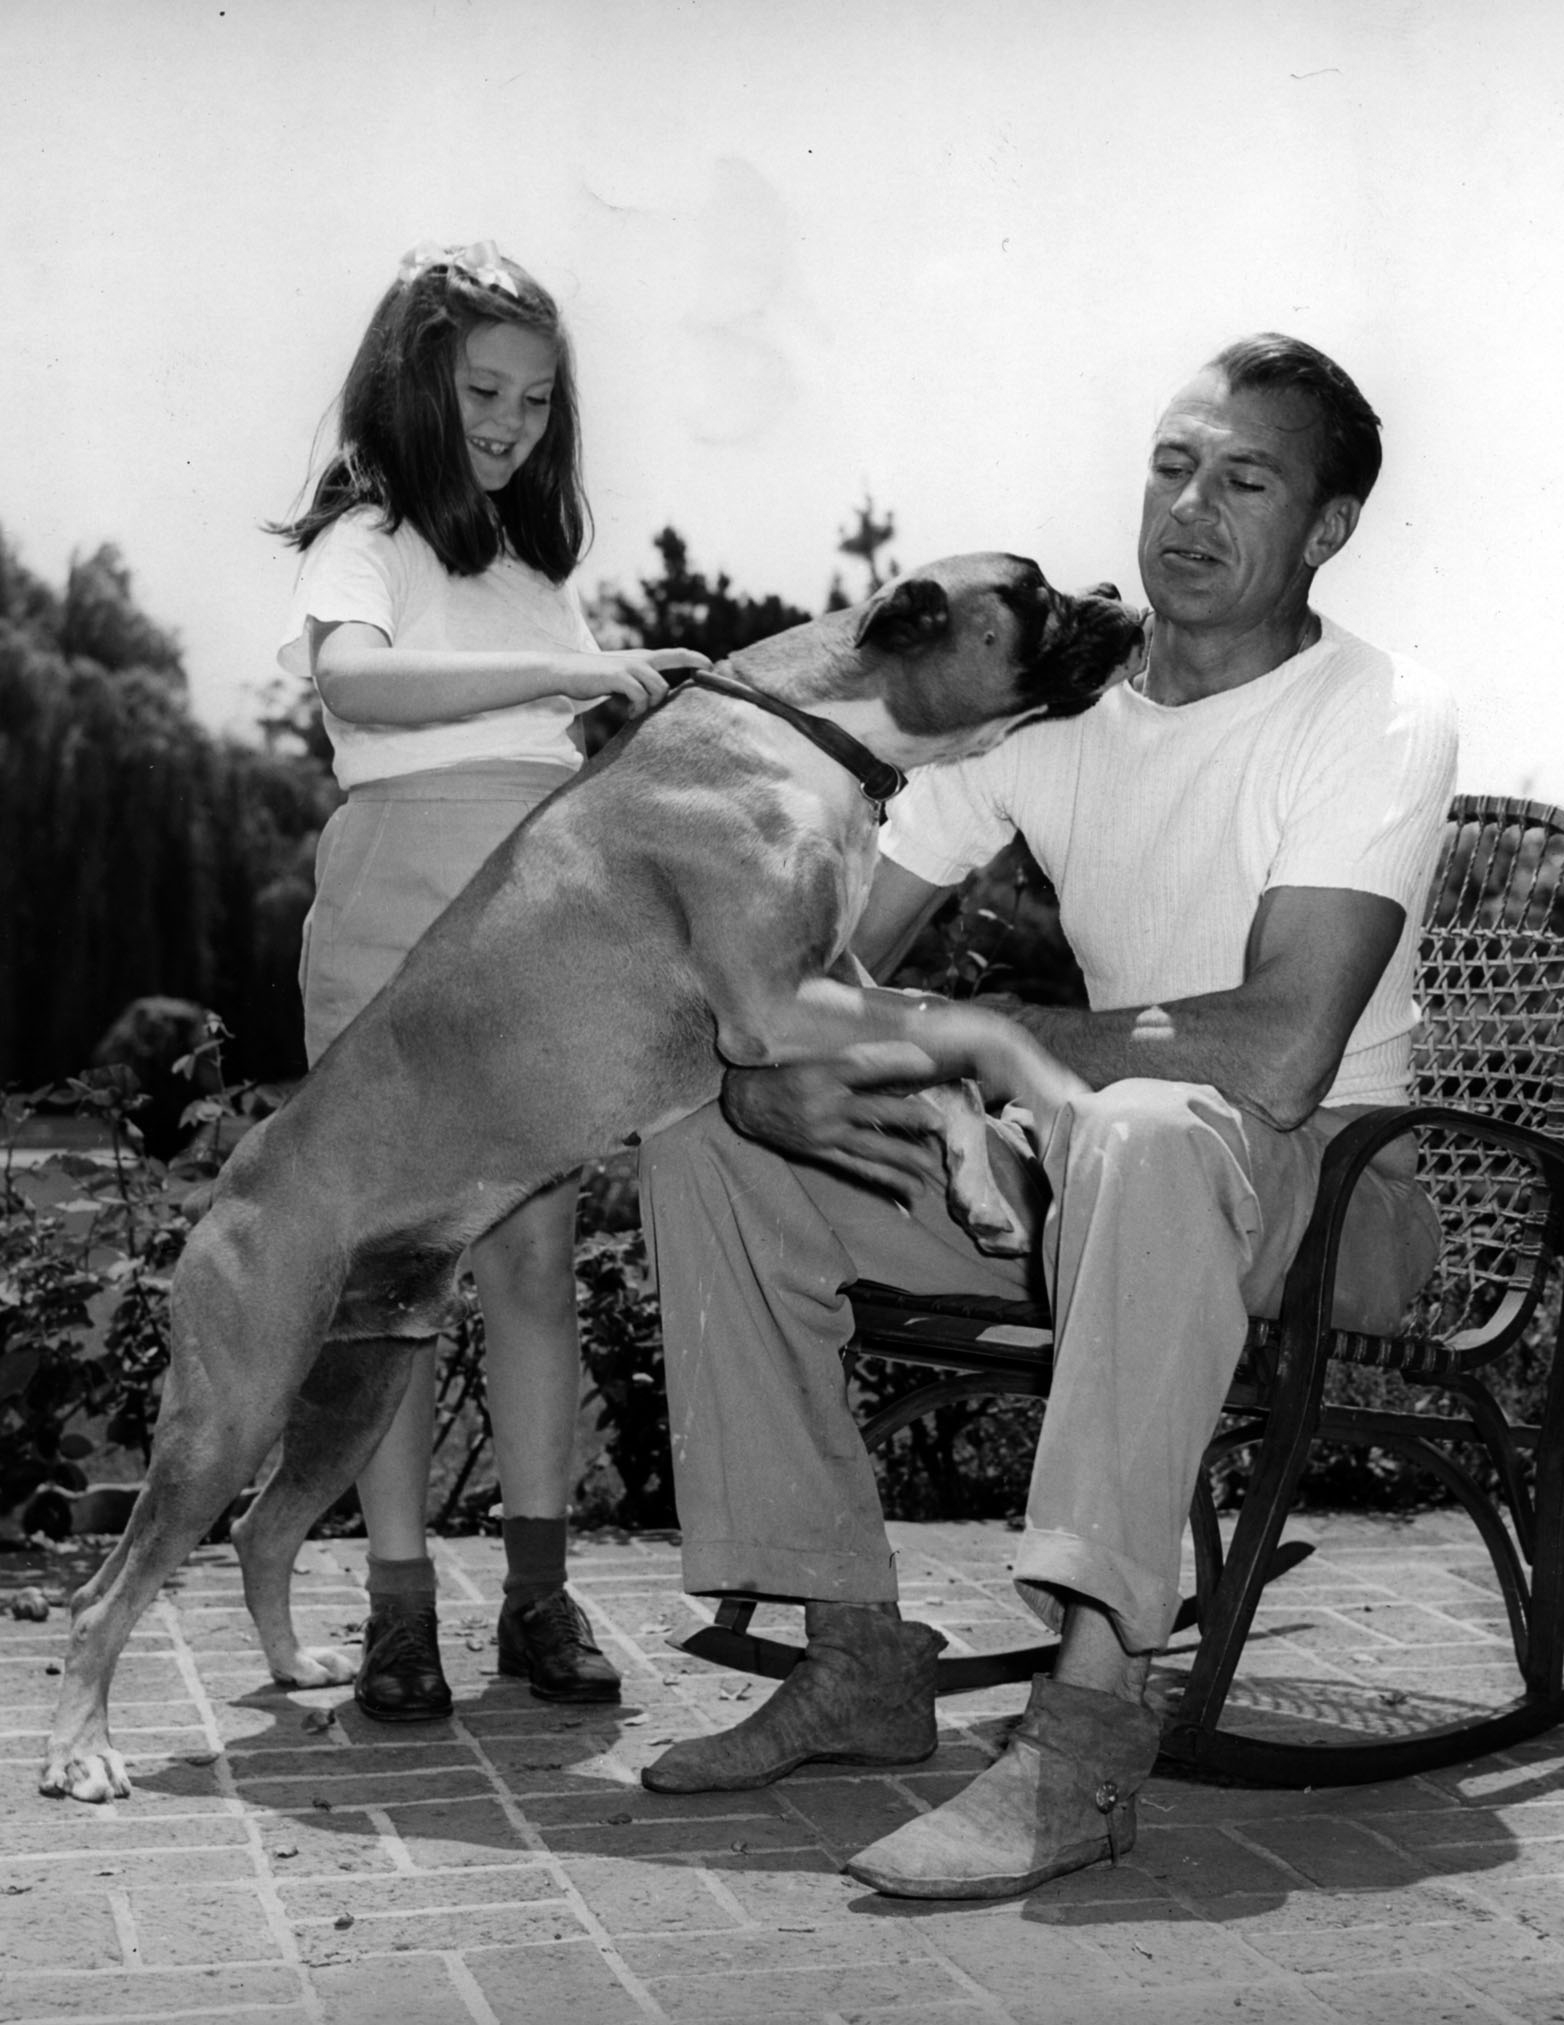 Gary Cooper with his daughter and dog, circa 1945.